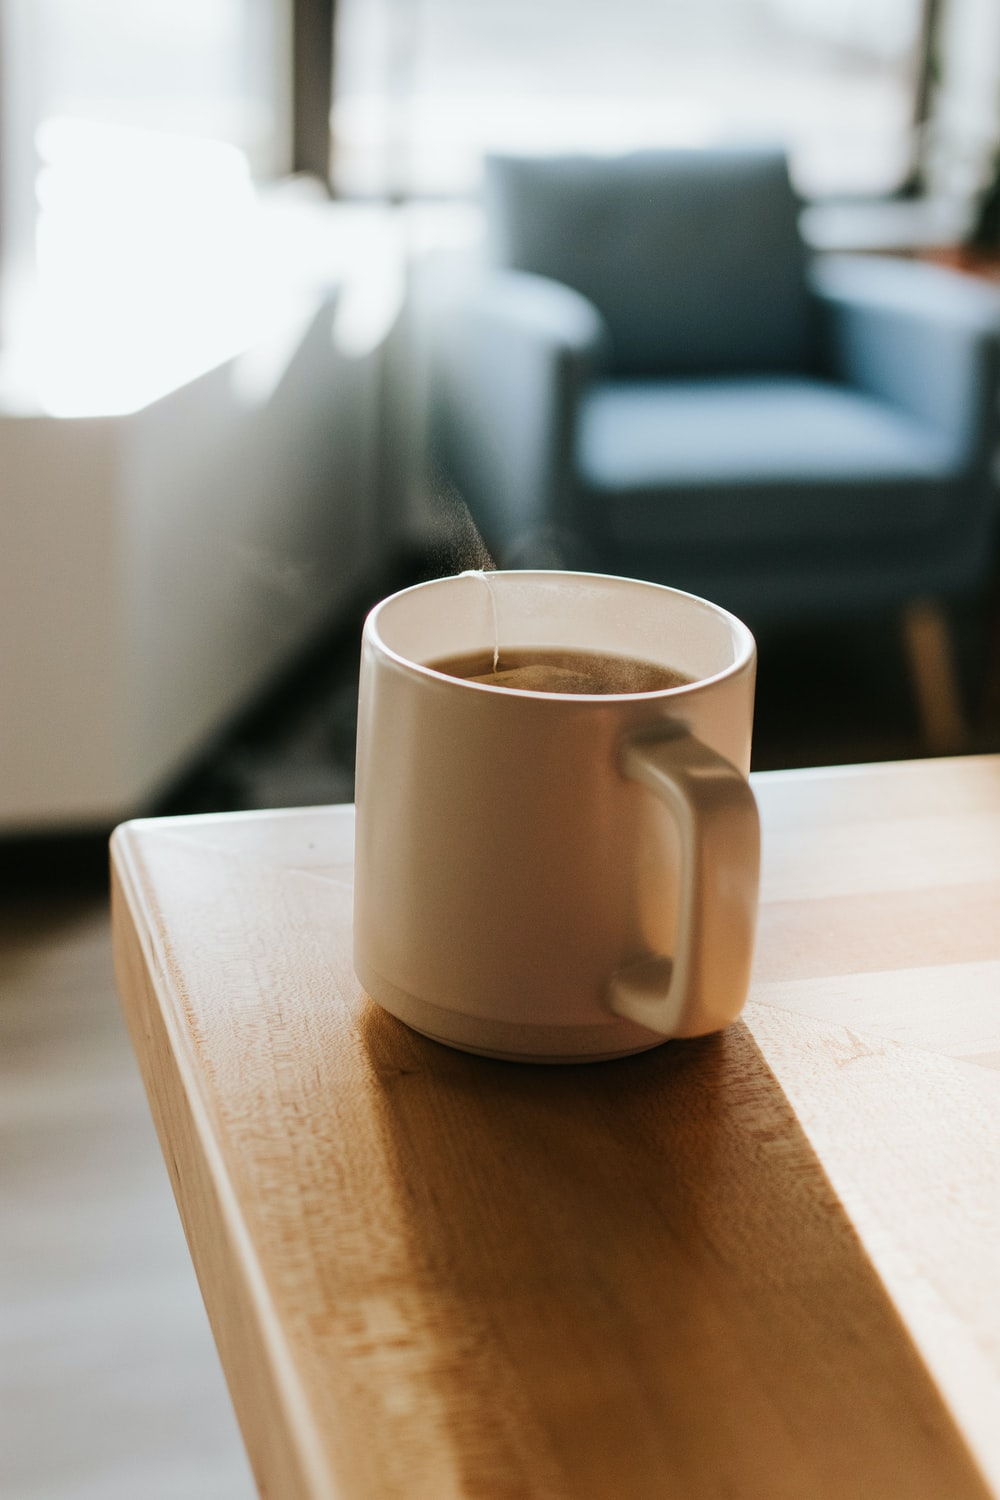 mug of coffee on top of a wooden table